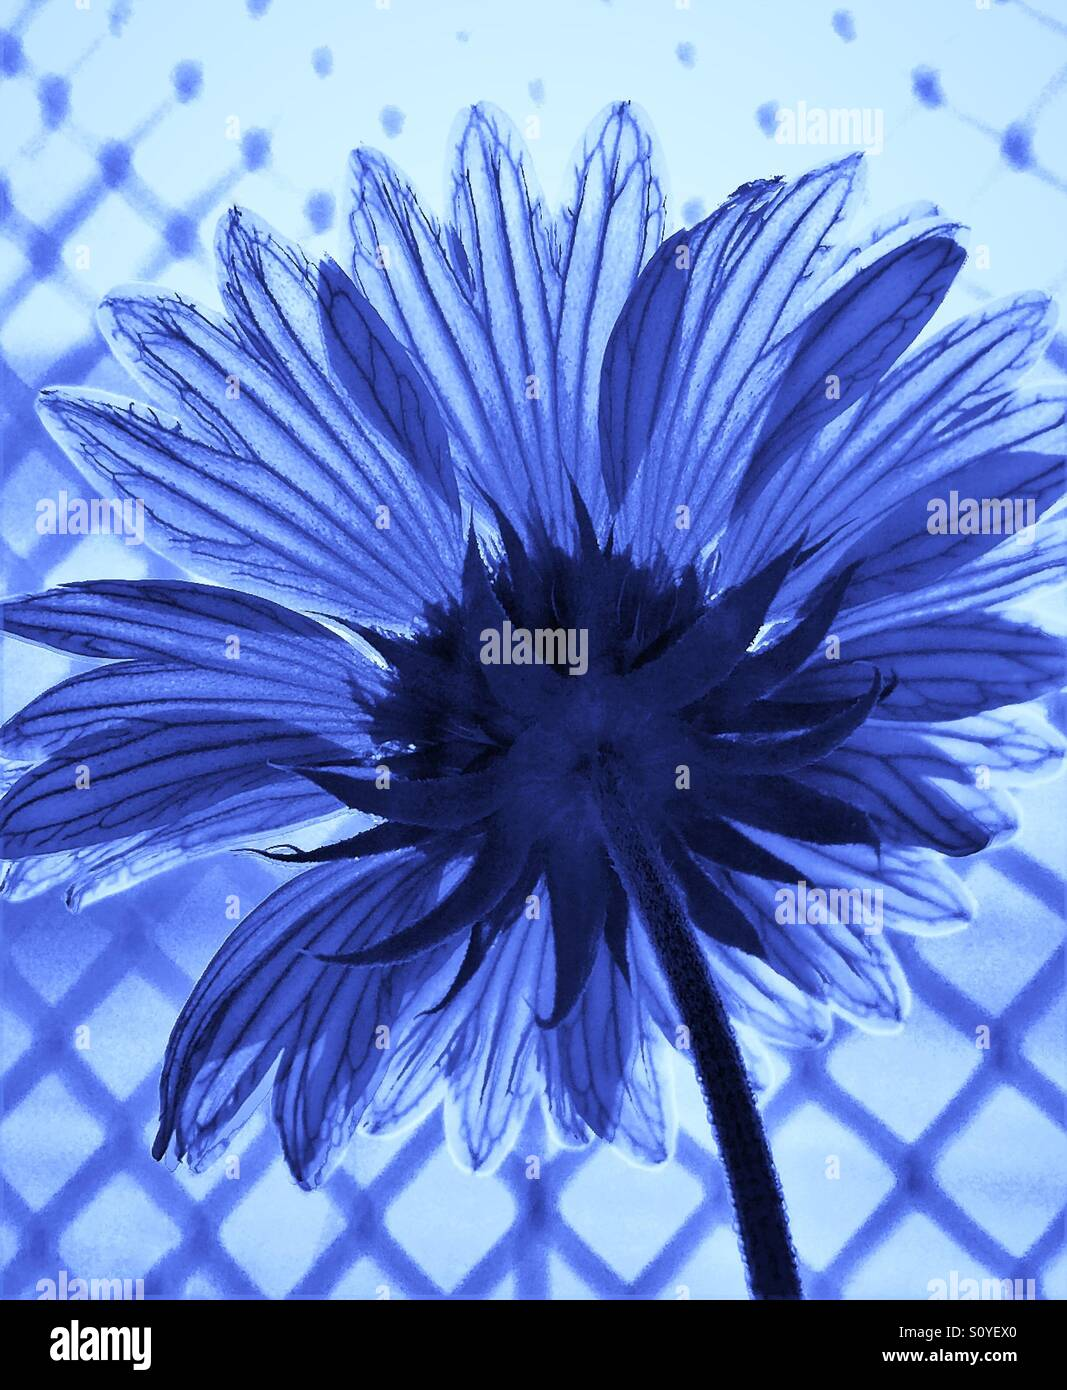 Flower by the fence facing the sun in blue tint, backside view - Stock Image